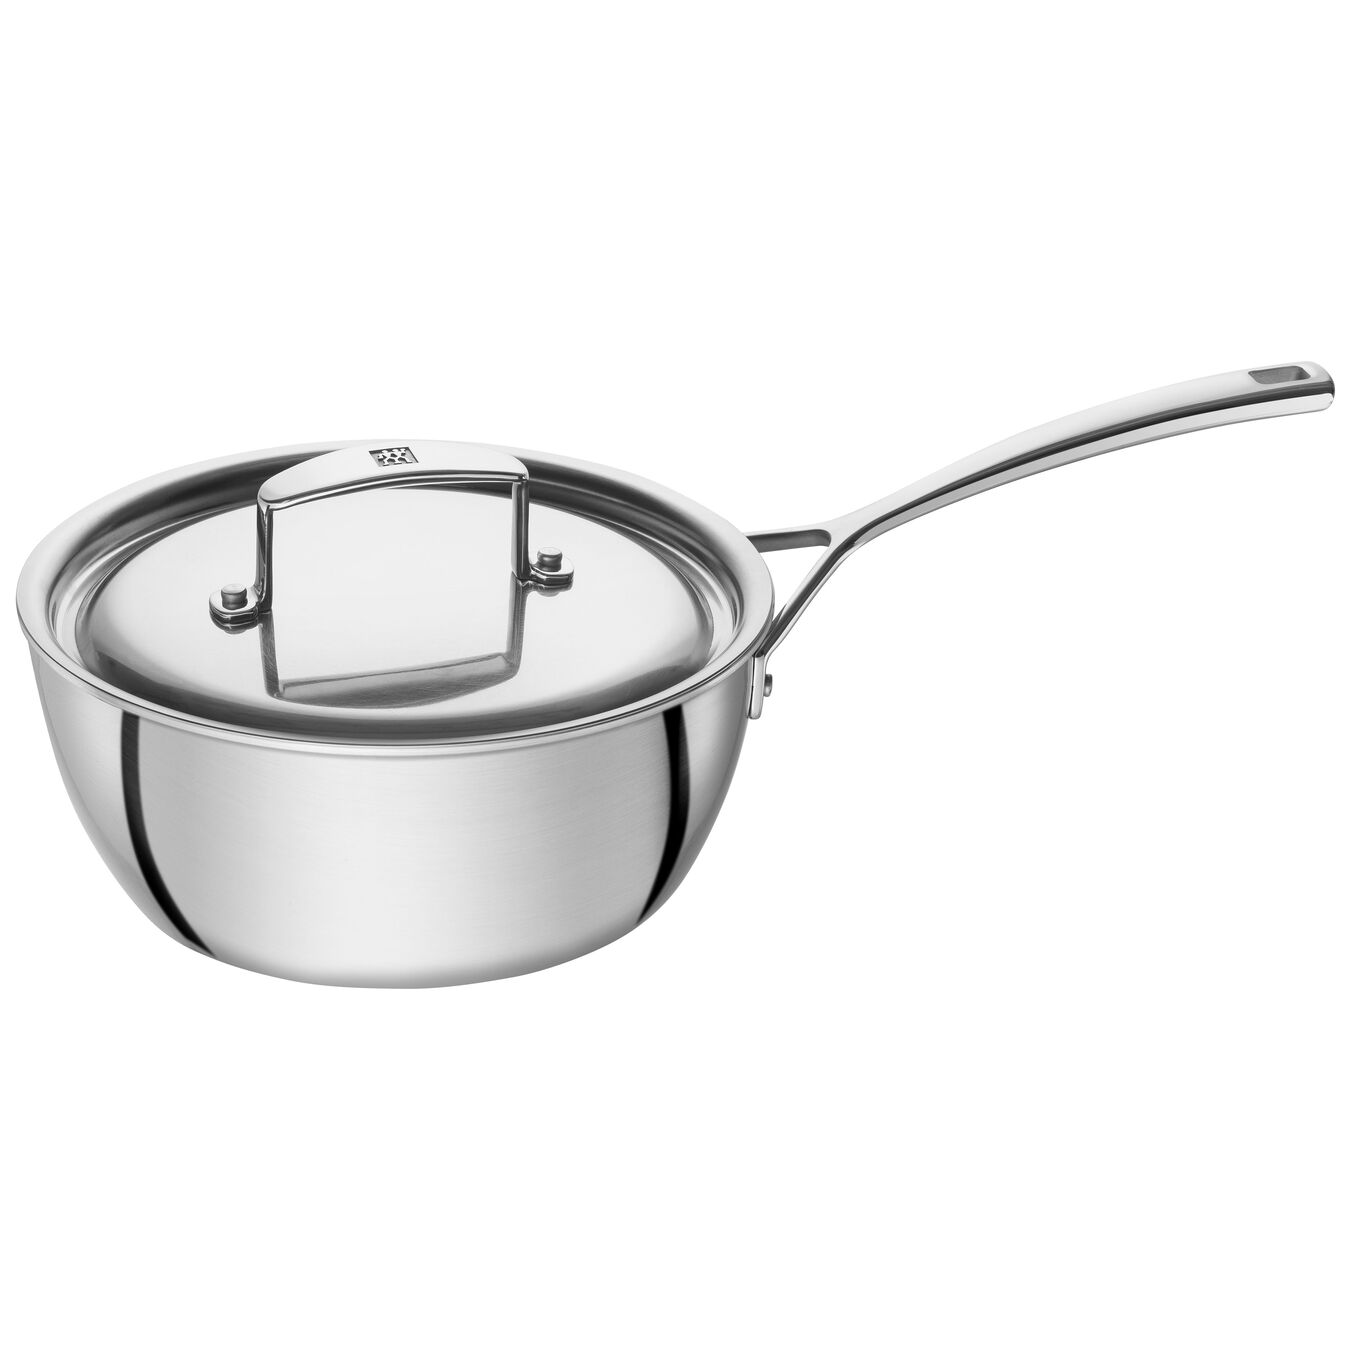 Stainless Steel 2-Qt. Saucier,,large 1